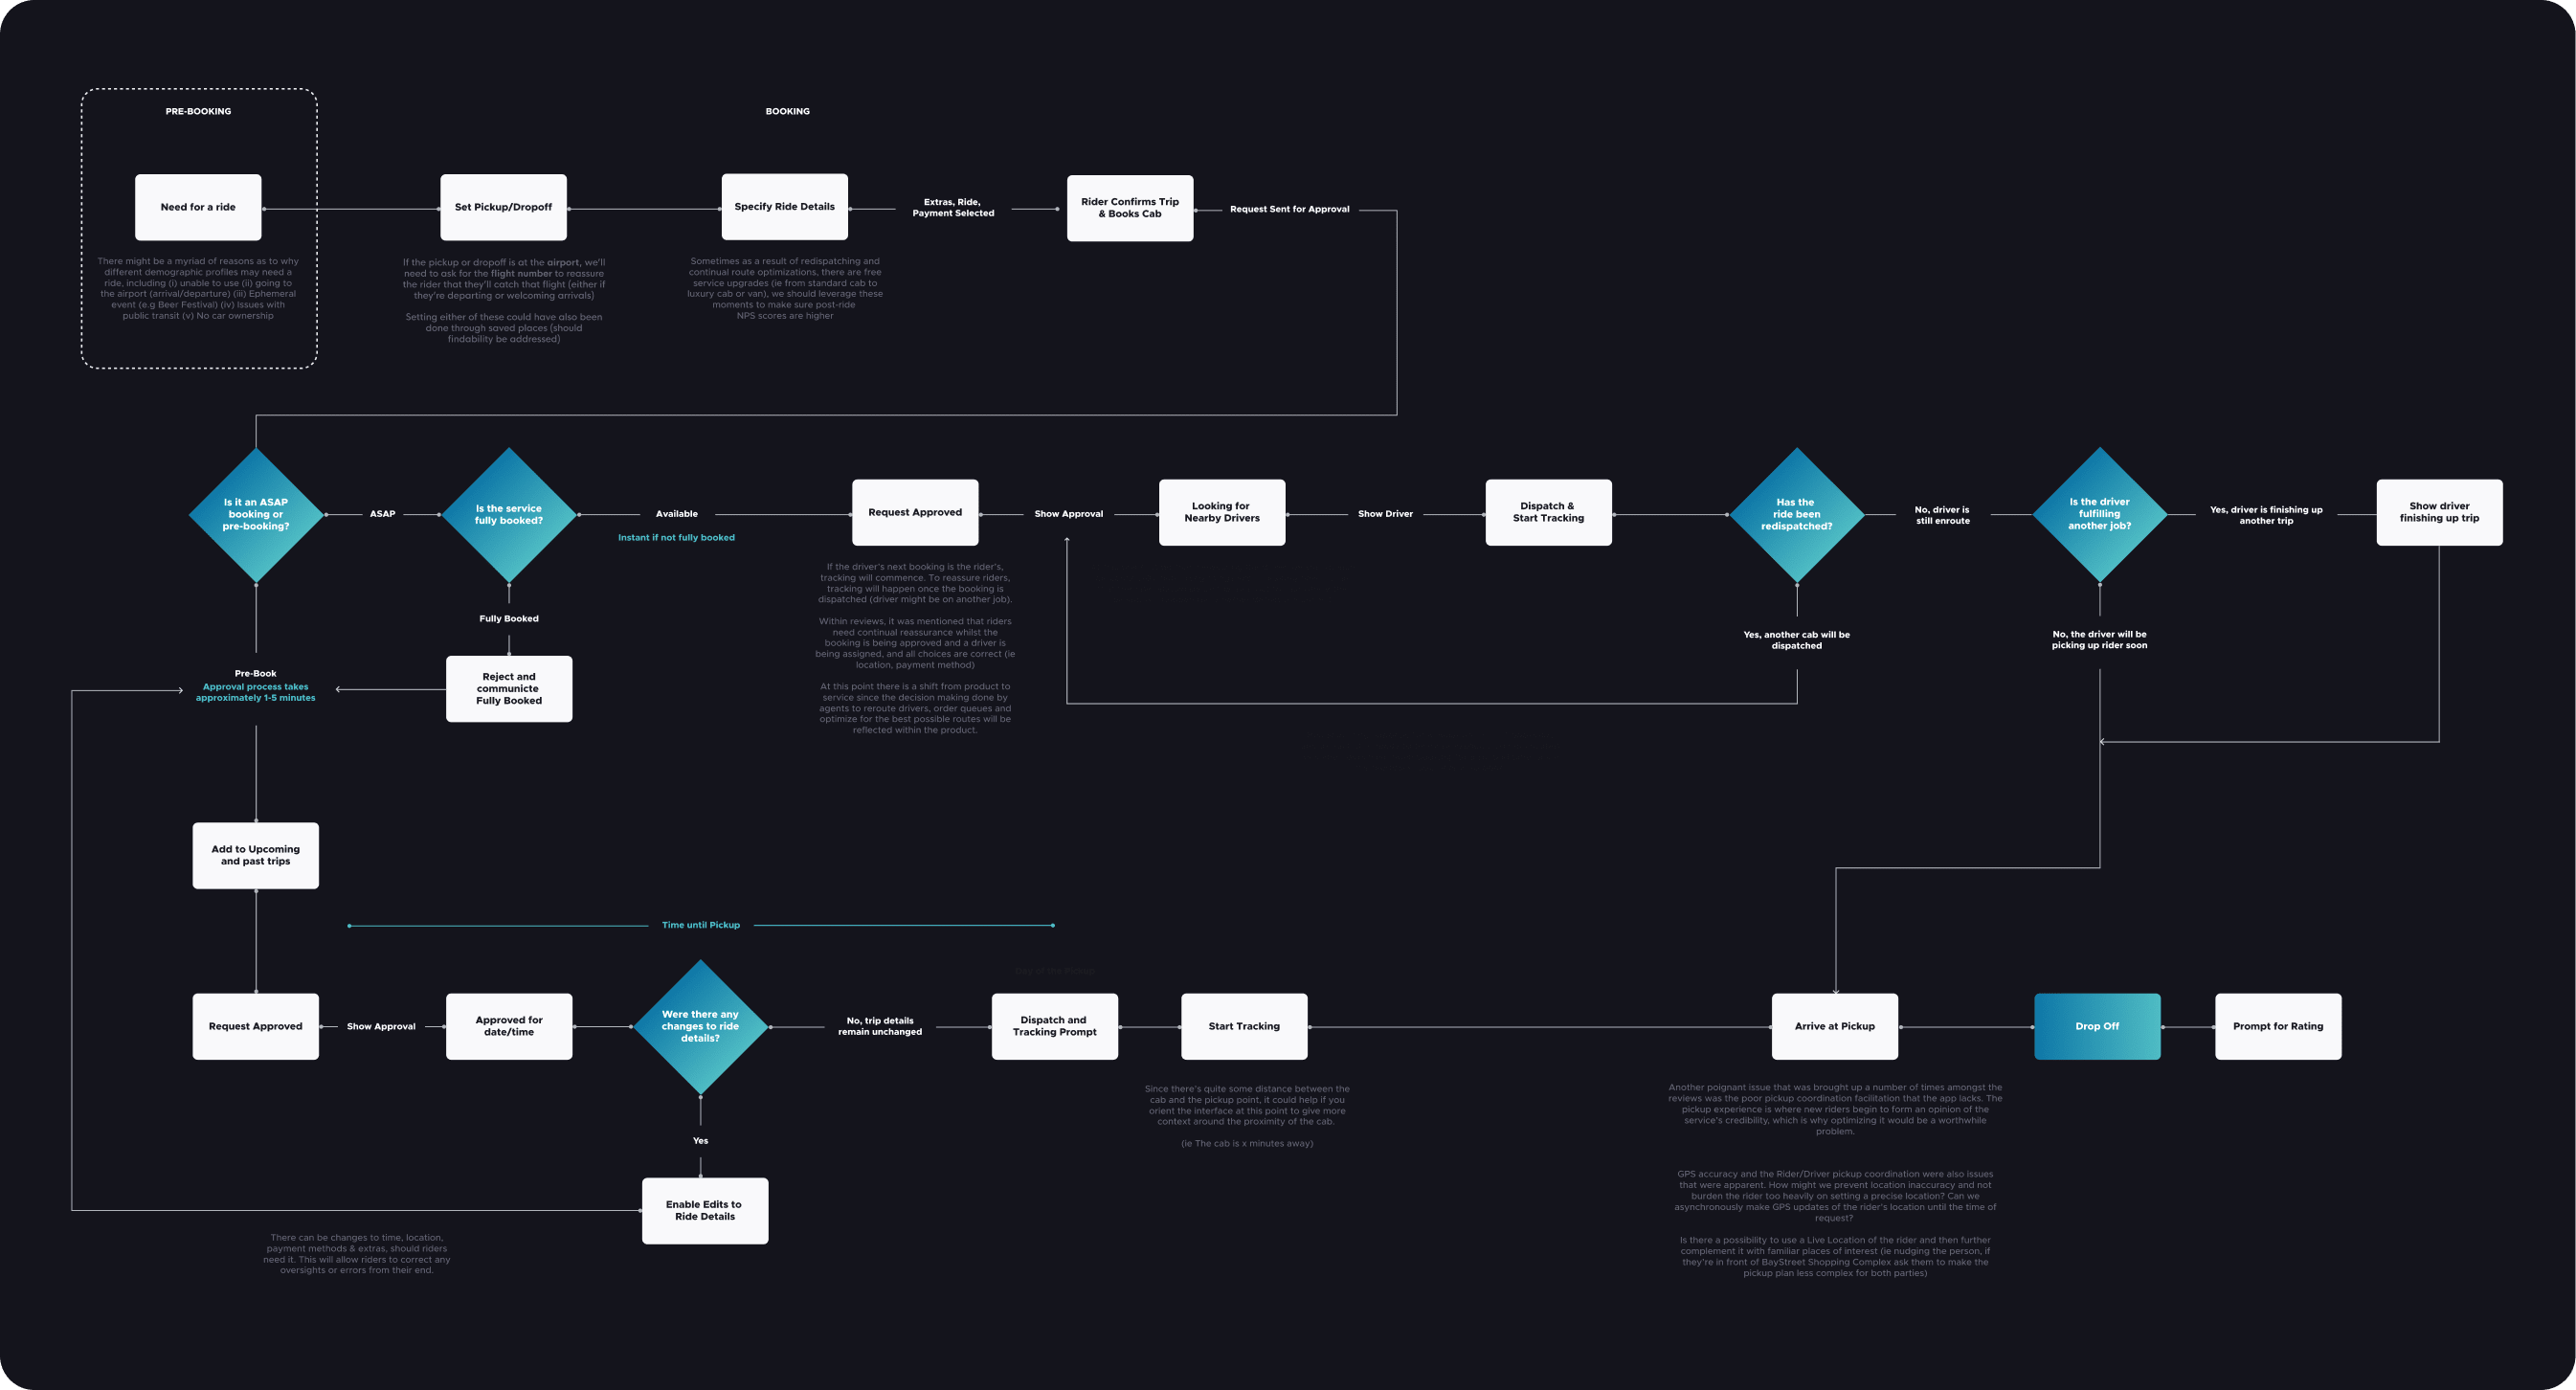 This is the full journey map from pre-booking to the point of booking.